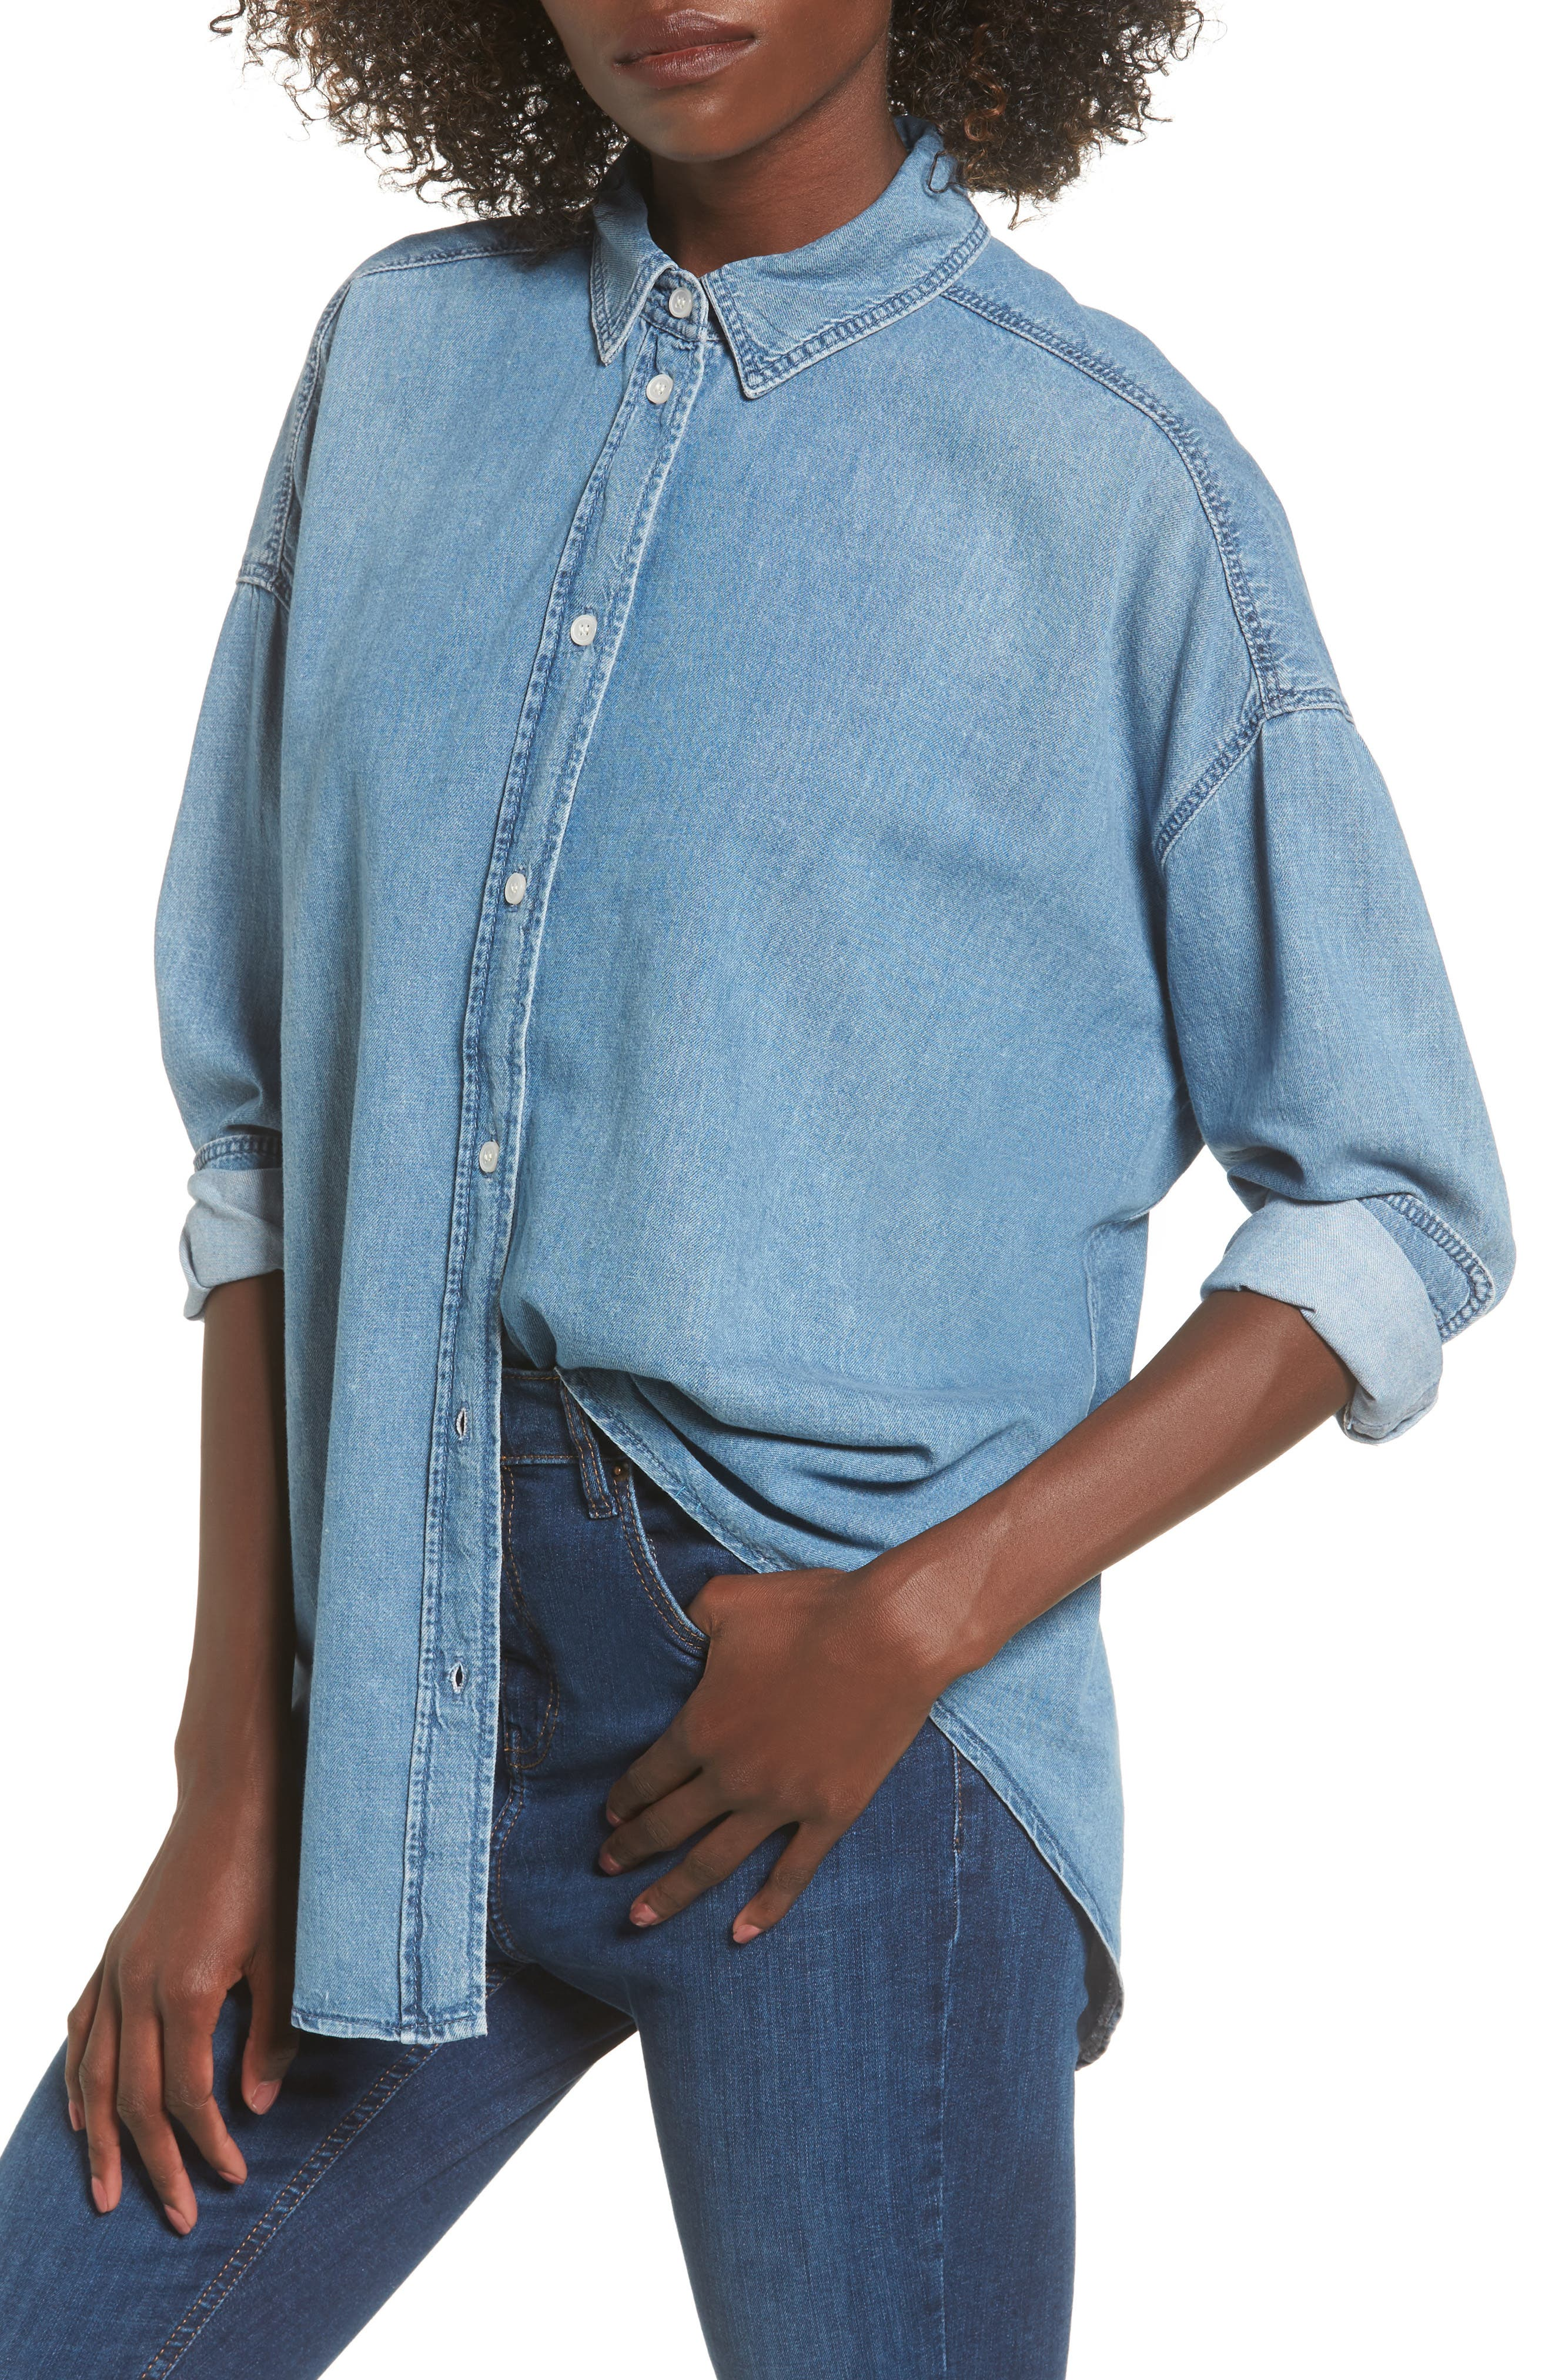 Alternate Image 1 Selected - Topshop Elton Oversized Denim Shirt